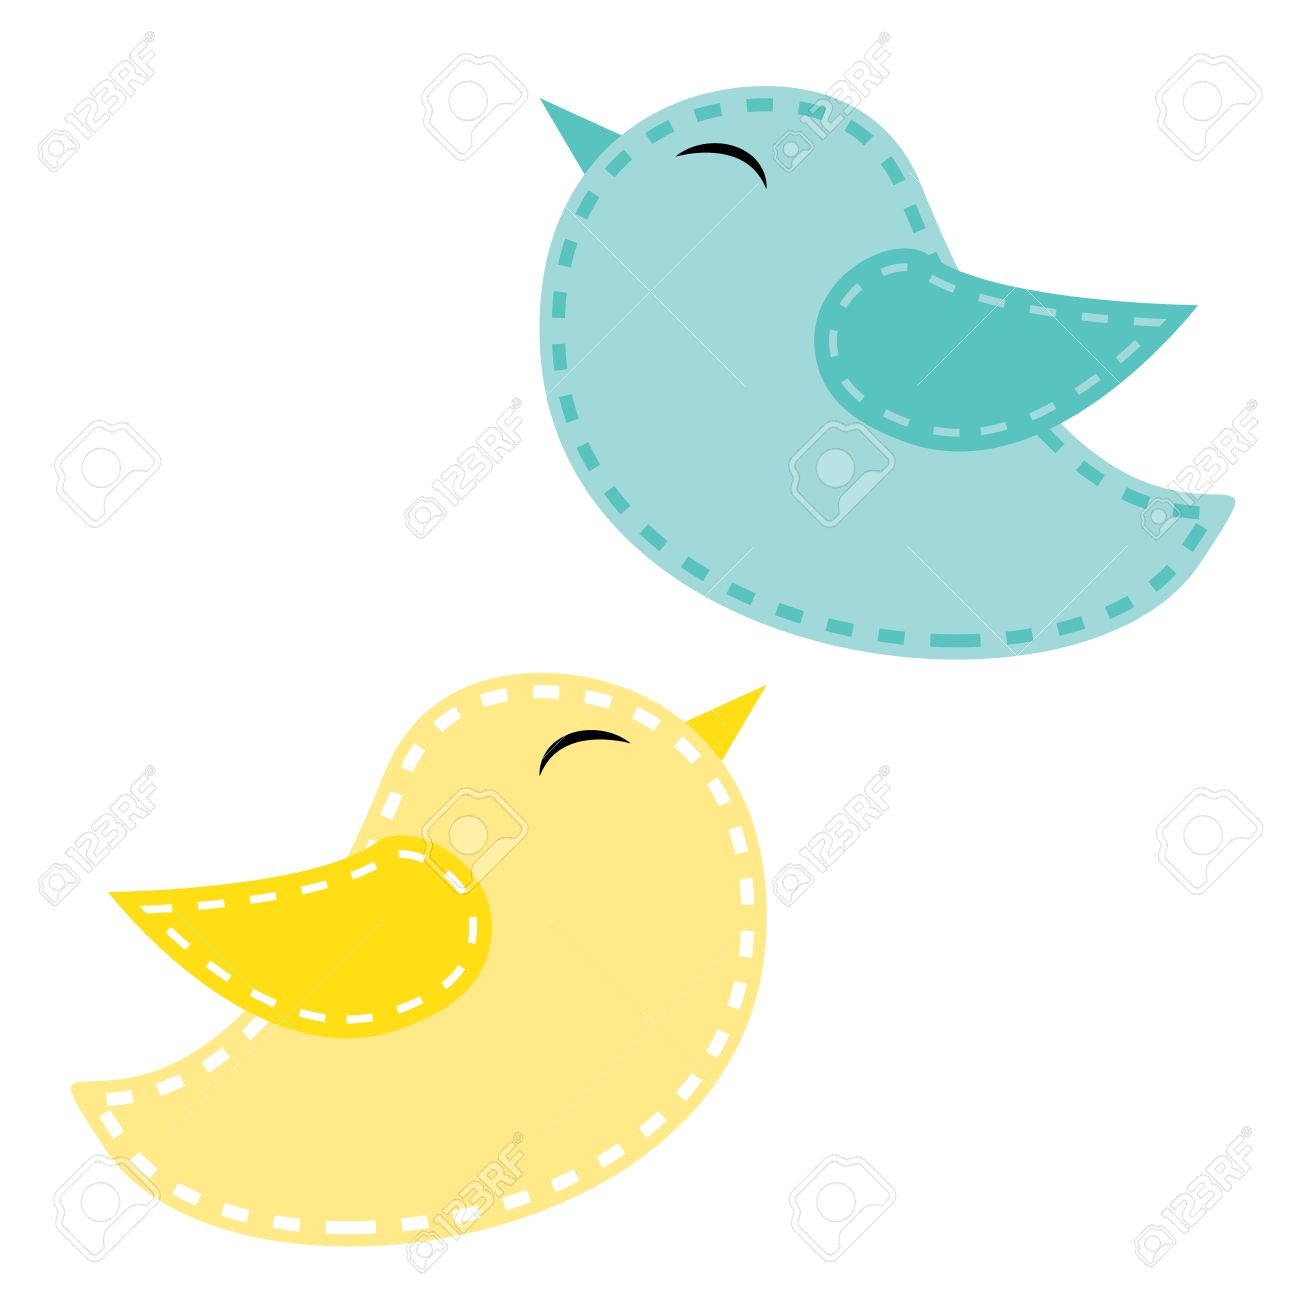 two cute birds blue and yellow on a transparent background rh 123rf com cute bird clipart black and white cute baby bird clipart